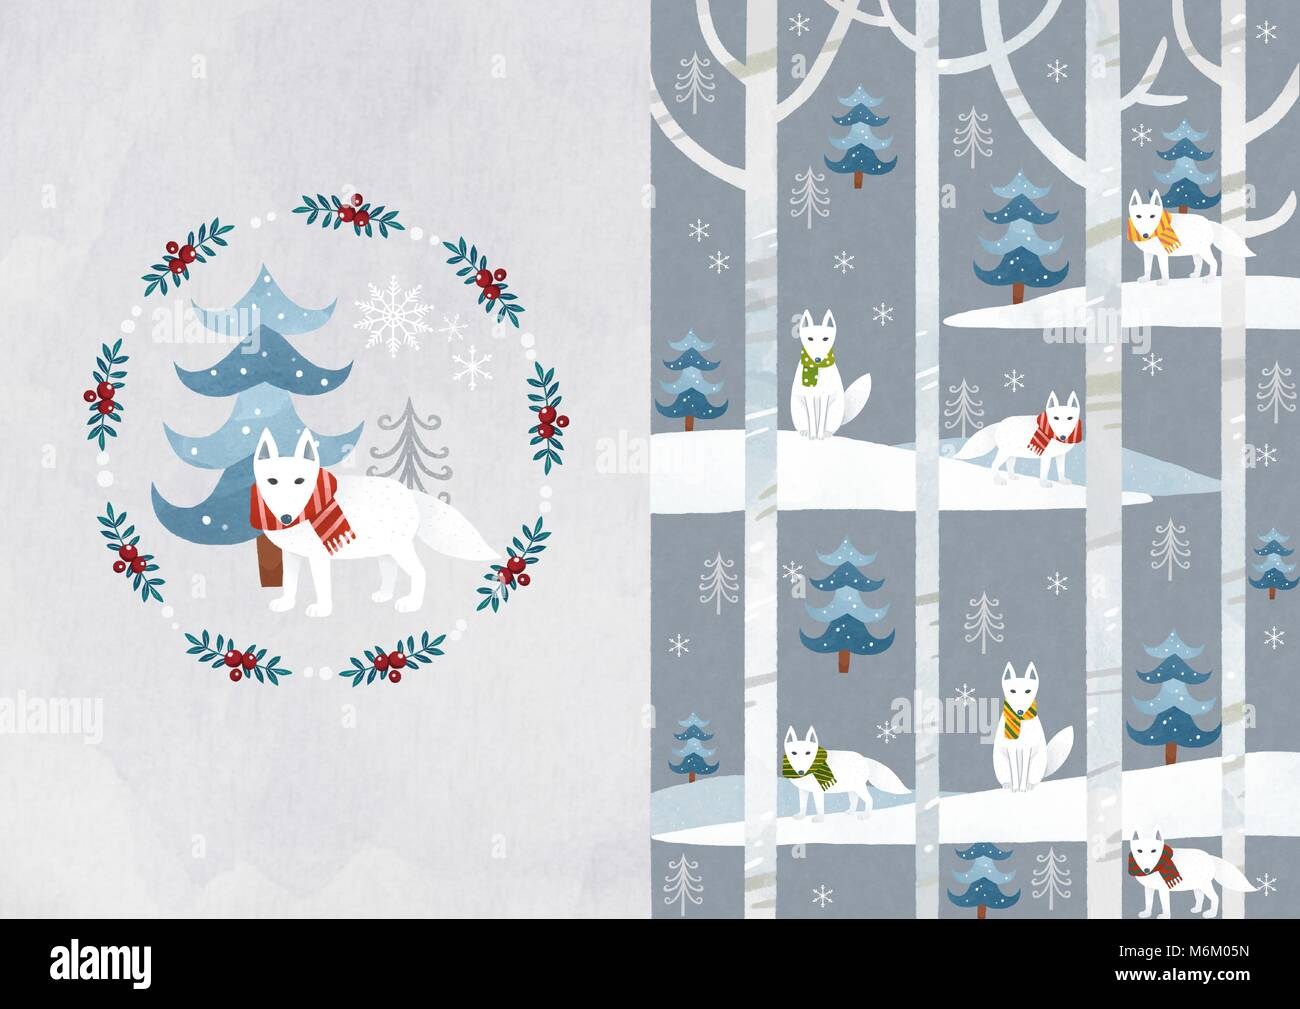 Vector pattern design related of winter season - a lucky bag, magpie, Christmas object and so on. 007 - Stock Image